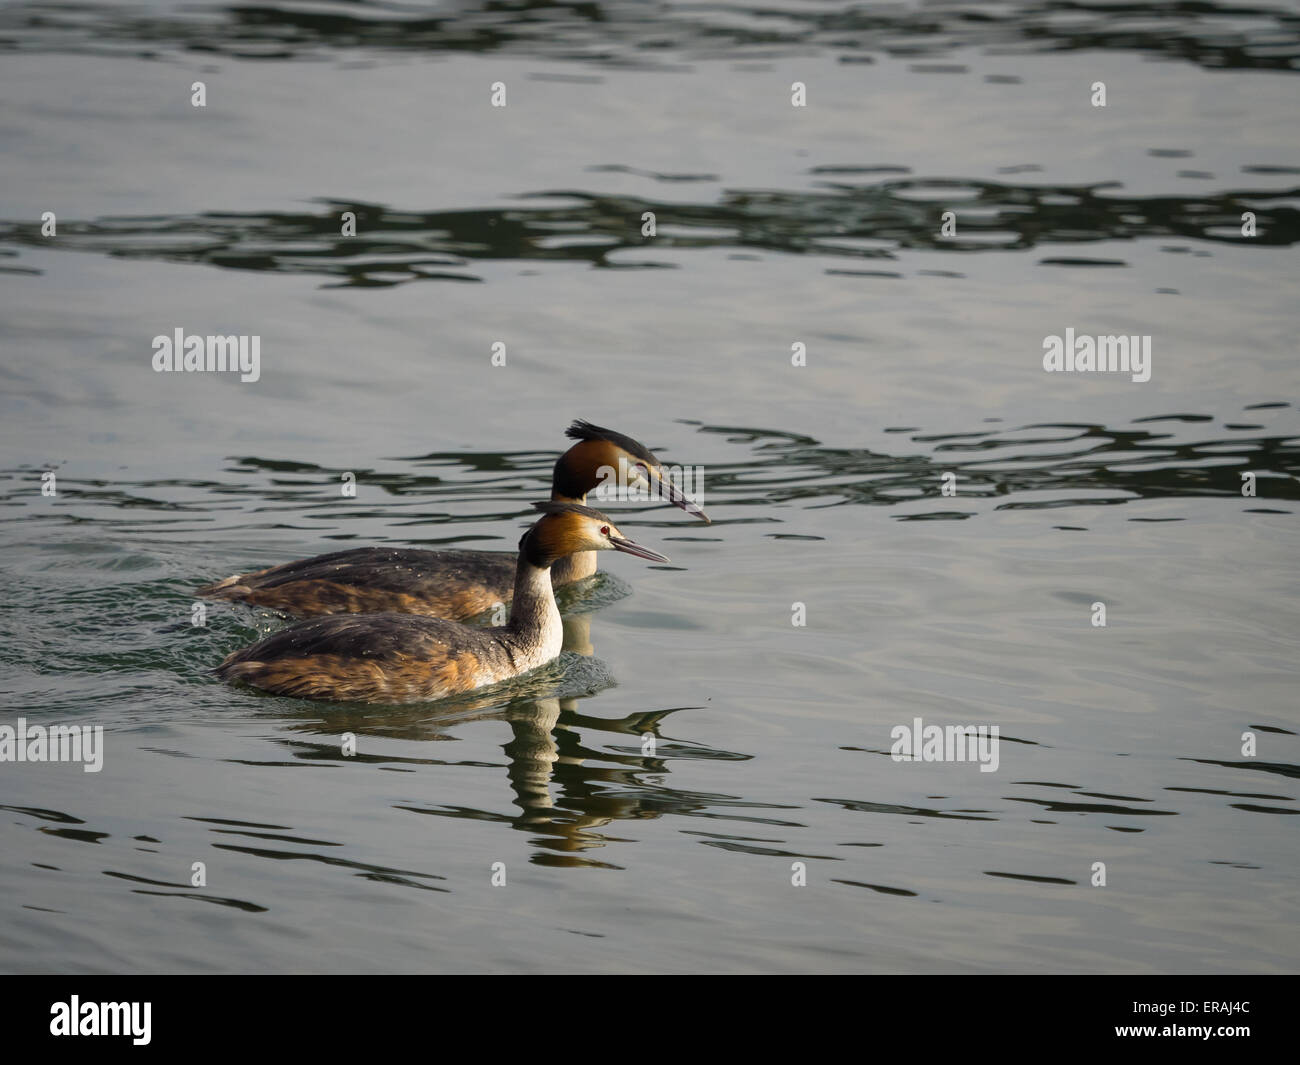 Pair of great crested grebes swimming on river - Stock Image